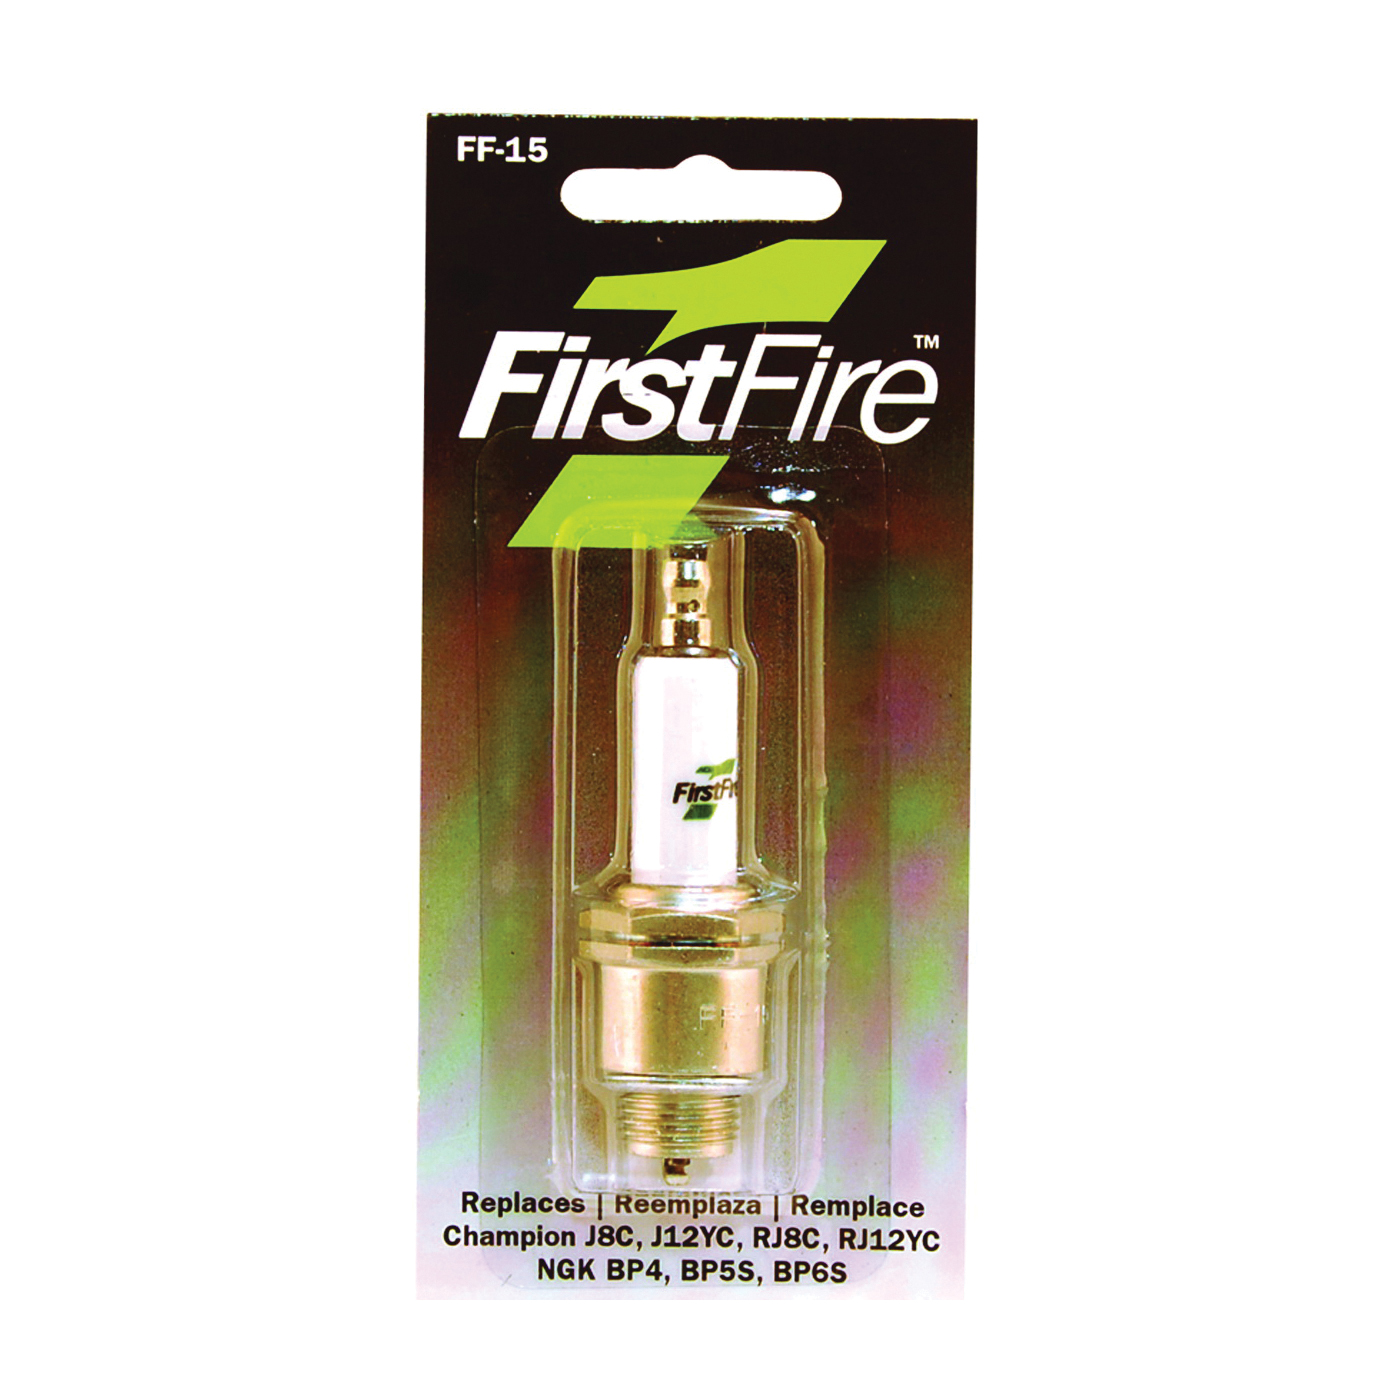 Picture of MTD FF-15 Spark Plug, 3/8 in Fill Gap, 0.551 in Thread, 13/16 in Hex